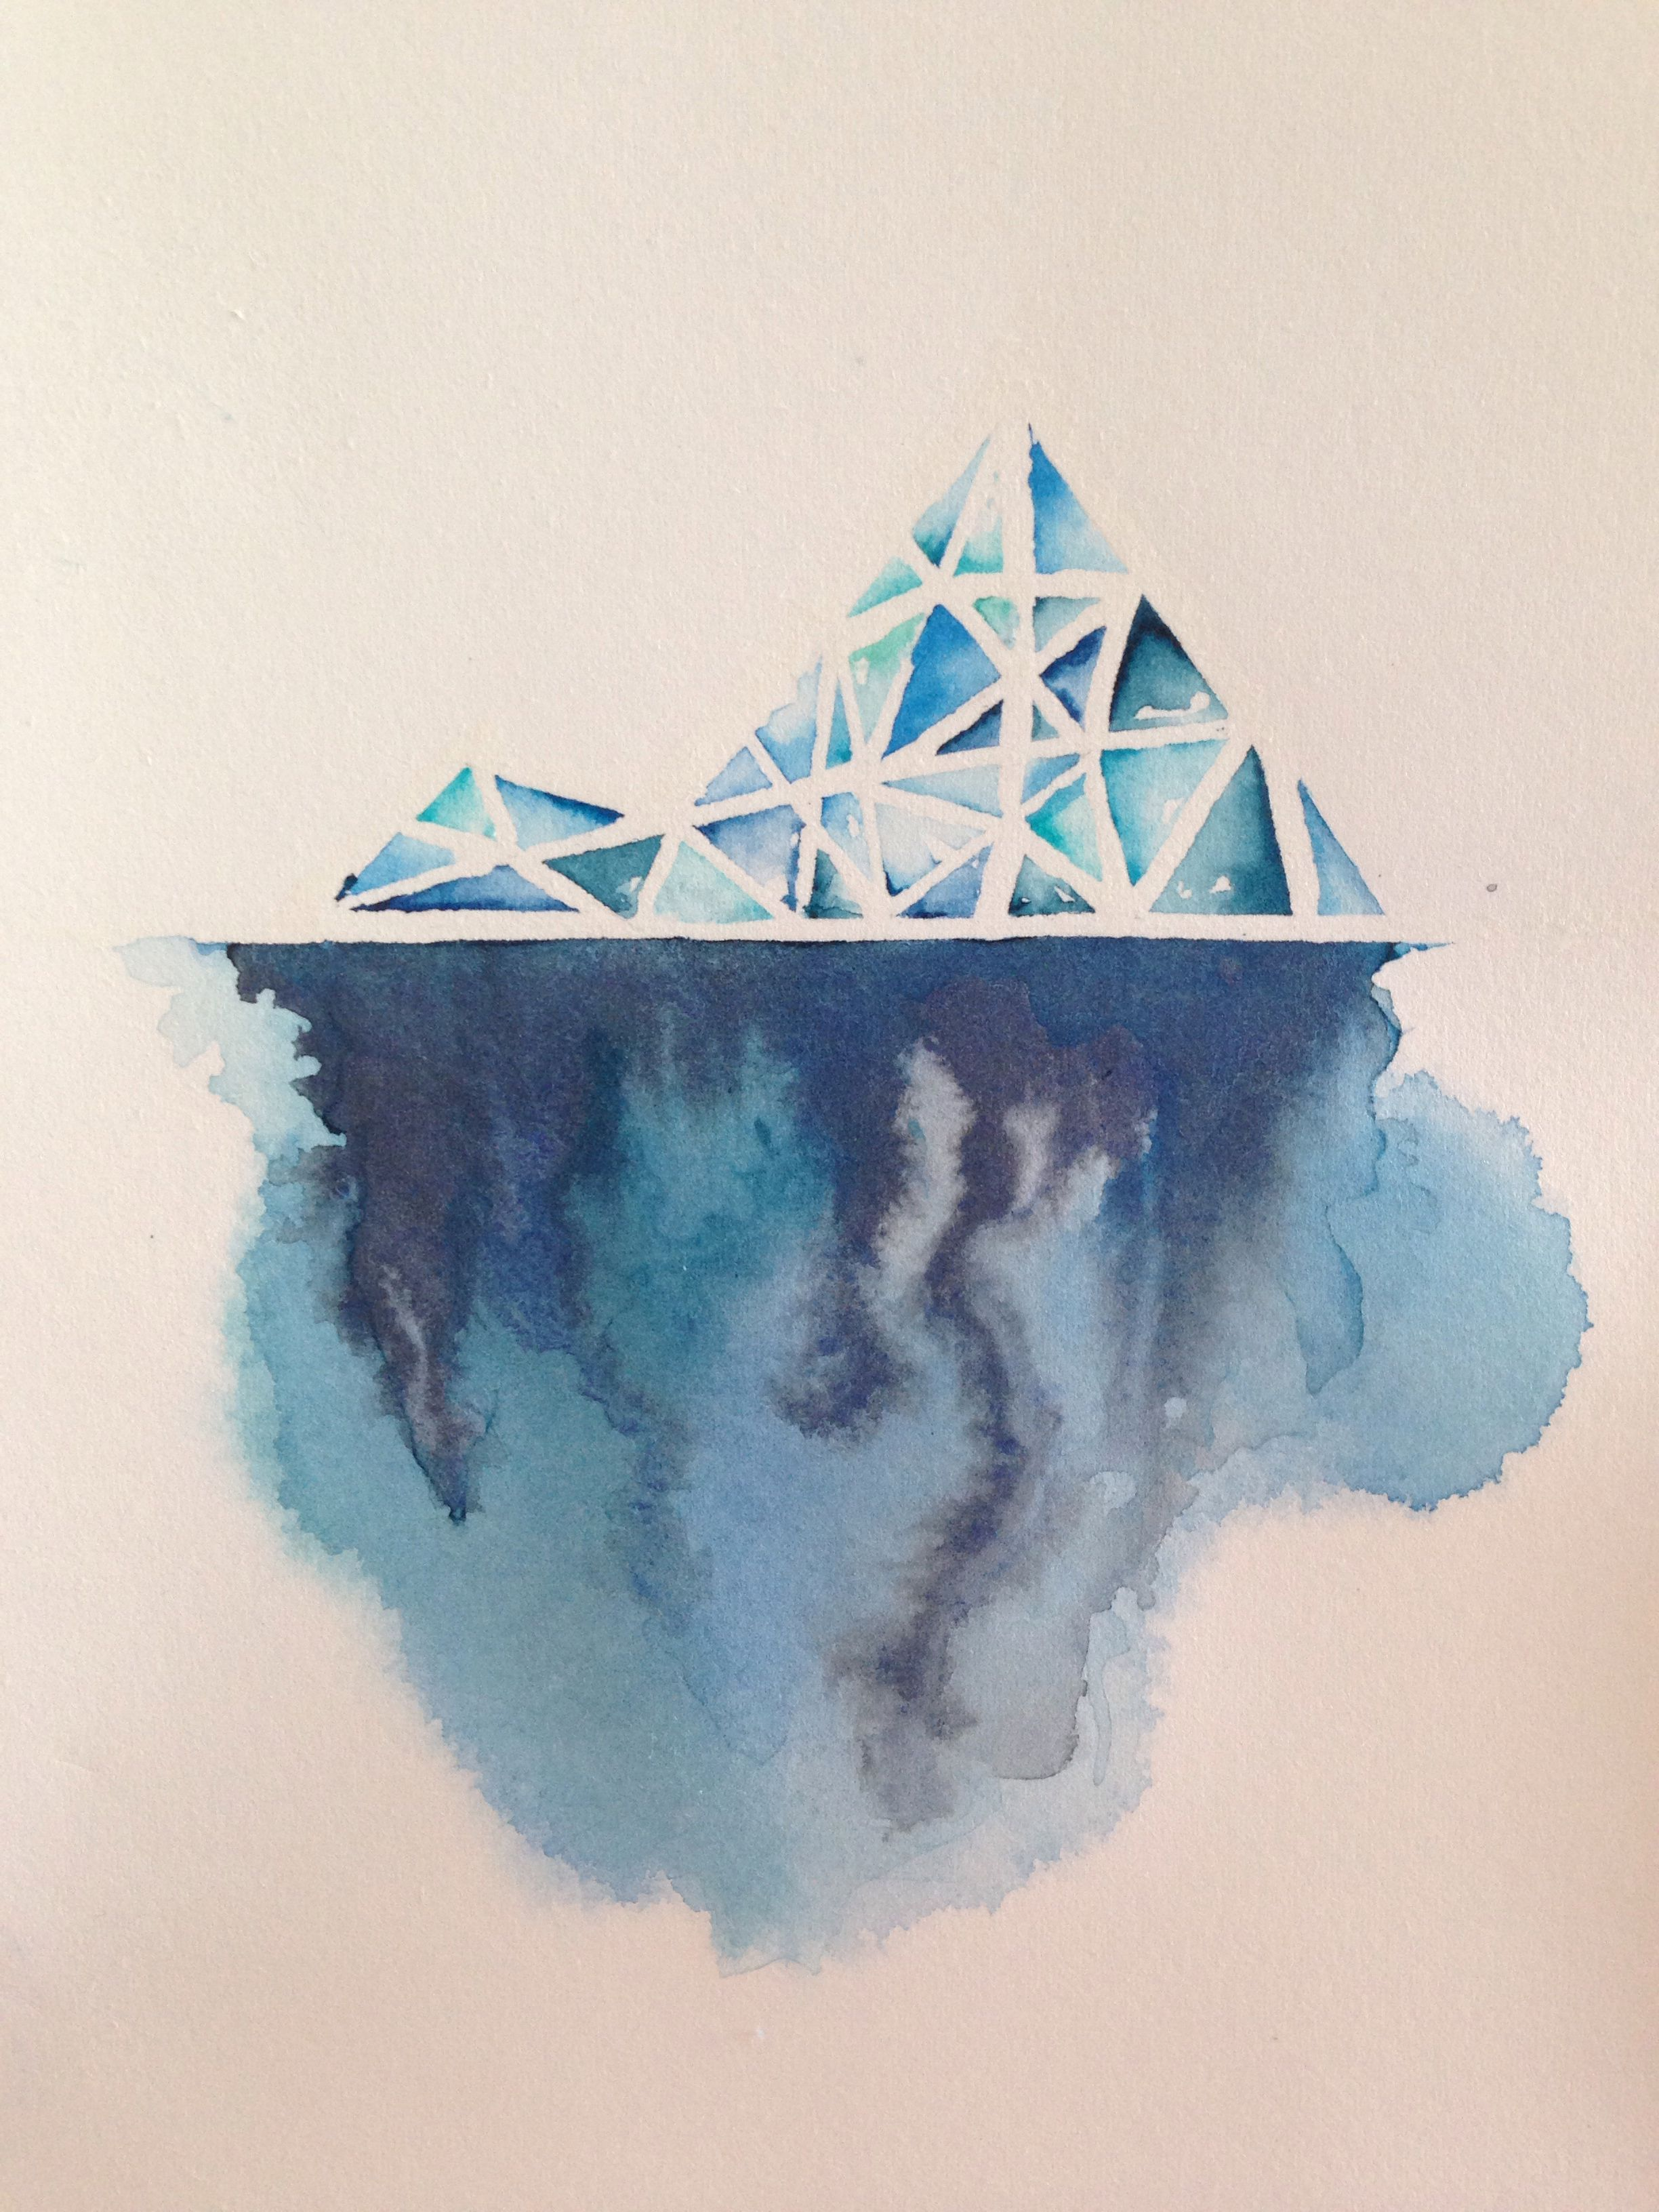 Blue Line Art Painting : Iceberg series the storm beneath original watercolor